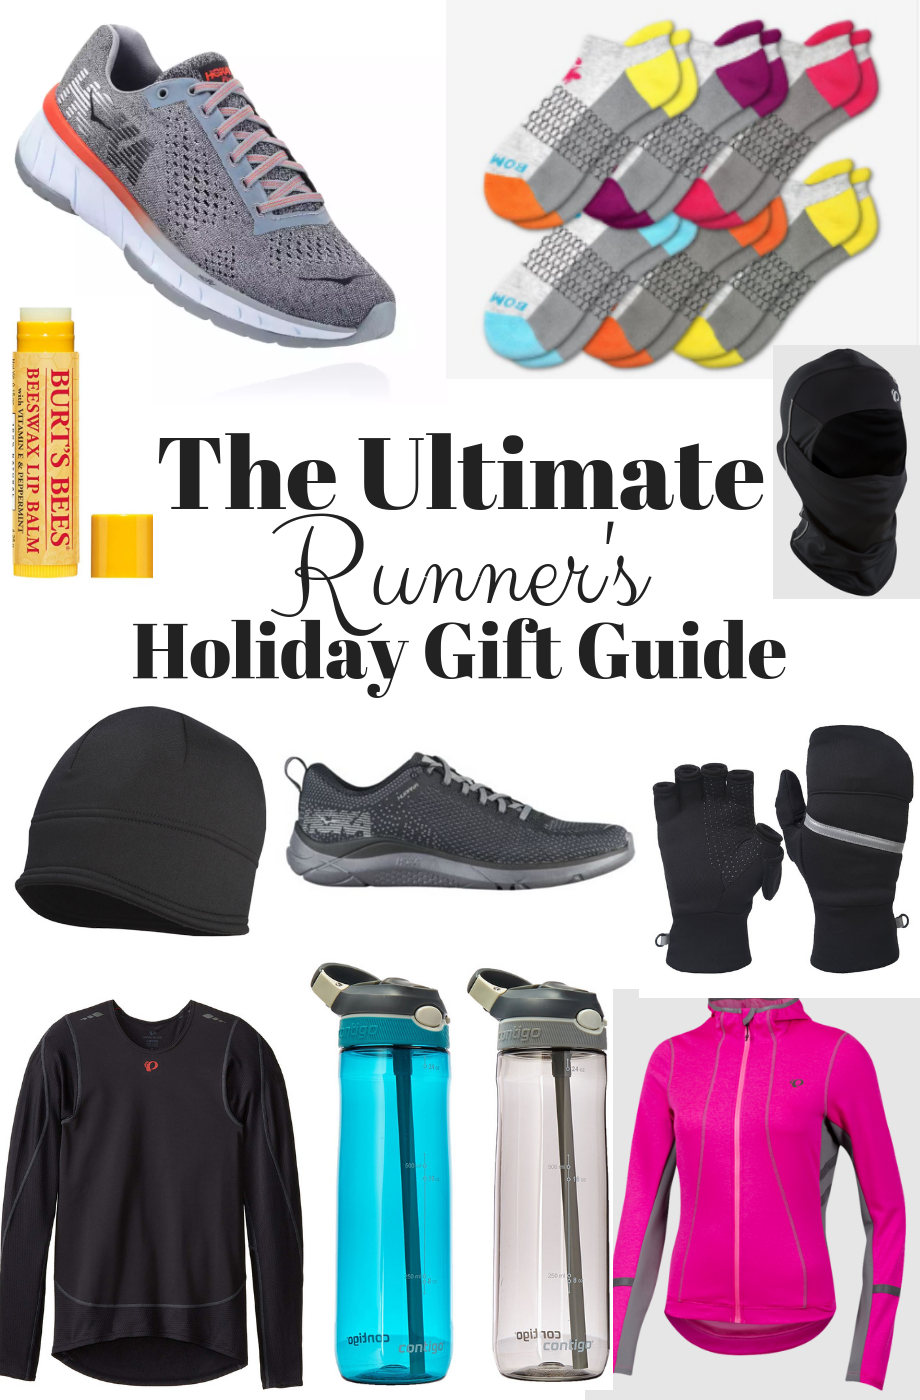 The Ultimate Runner's Holiday Gift Guide- A gift guide full of running gear including running shoes, cold-weather gear, running socks and more.